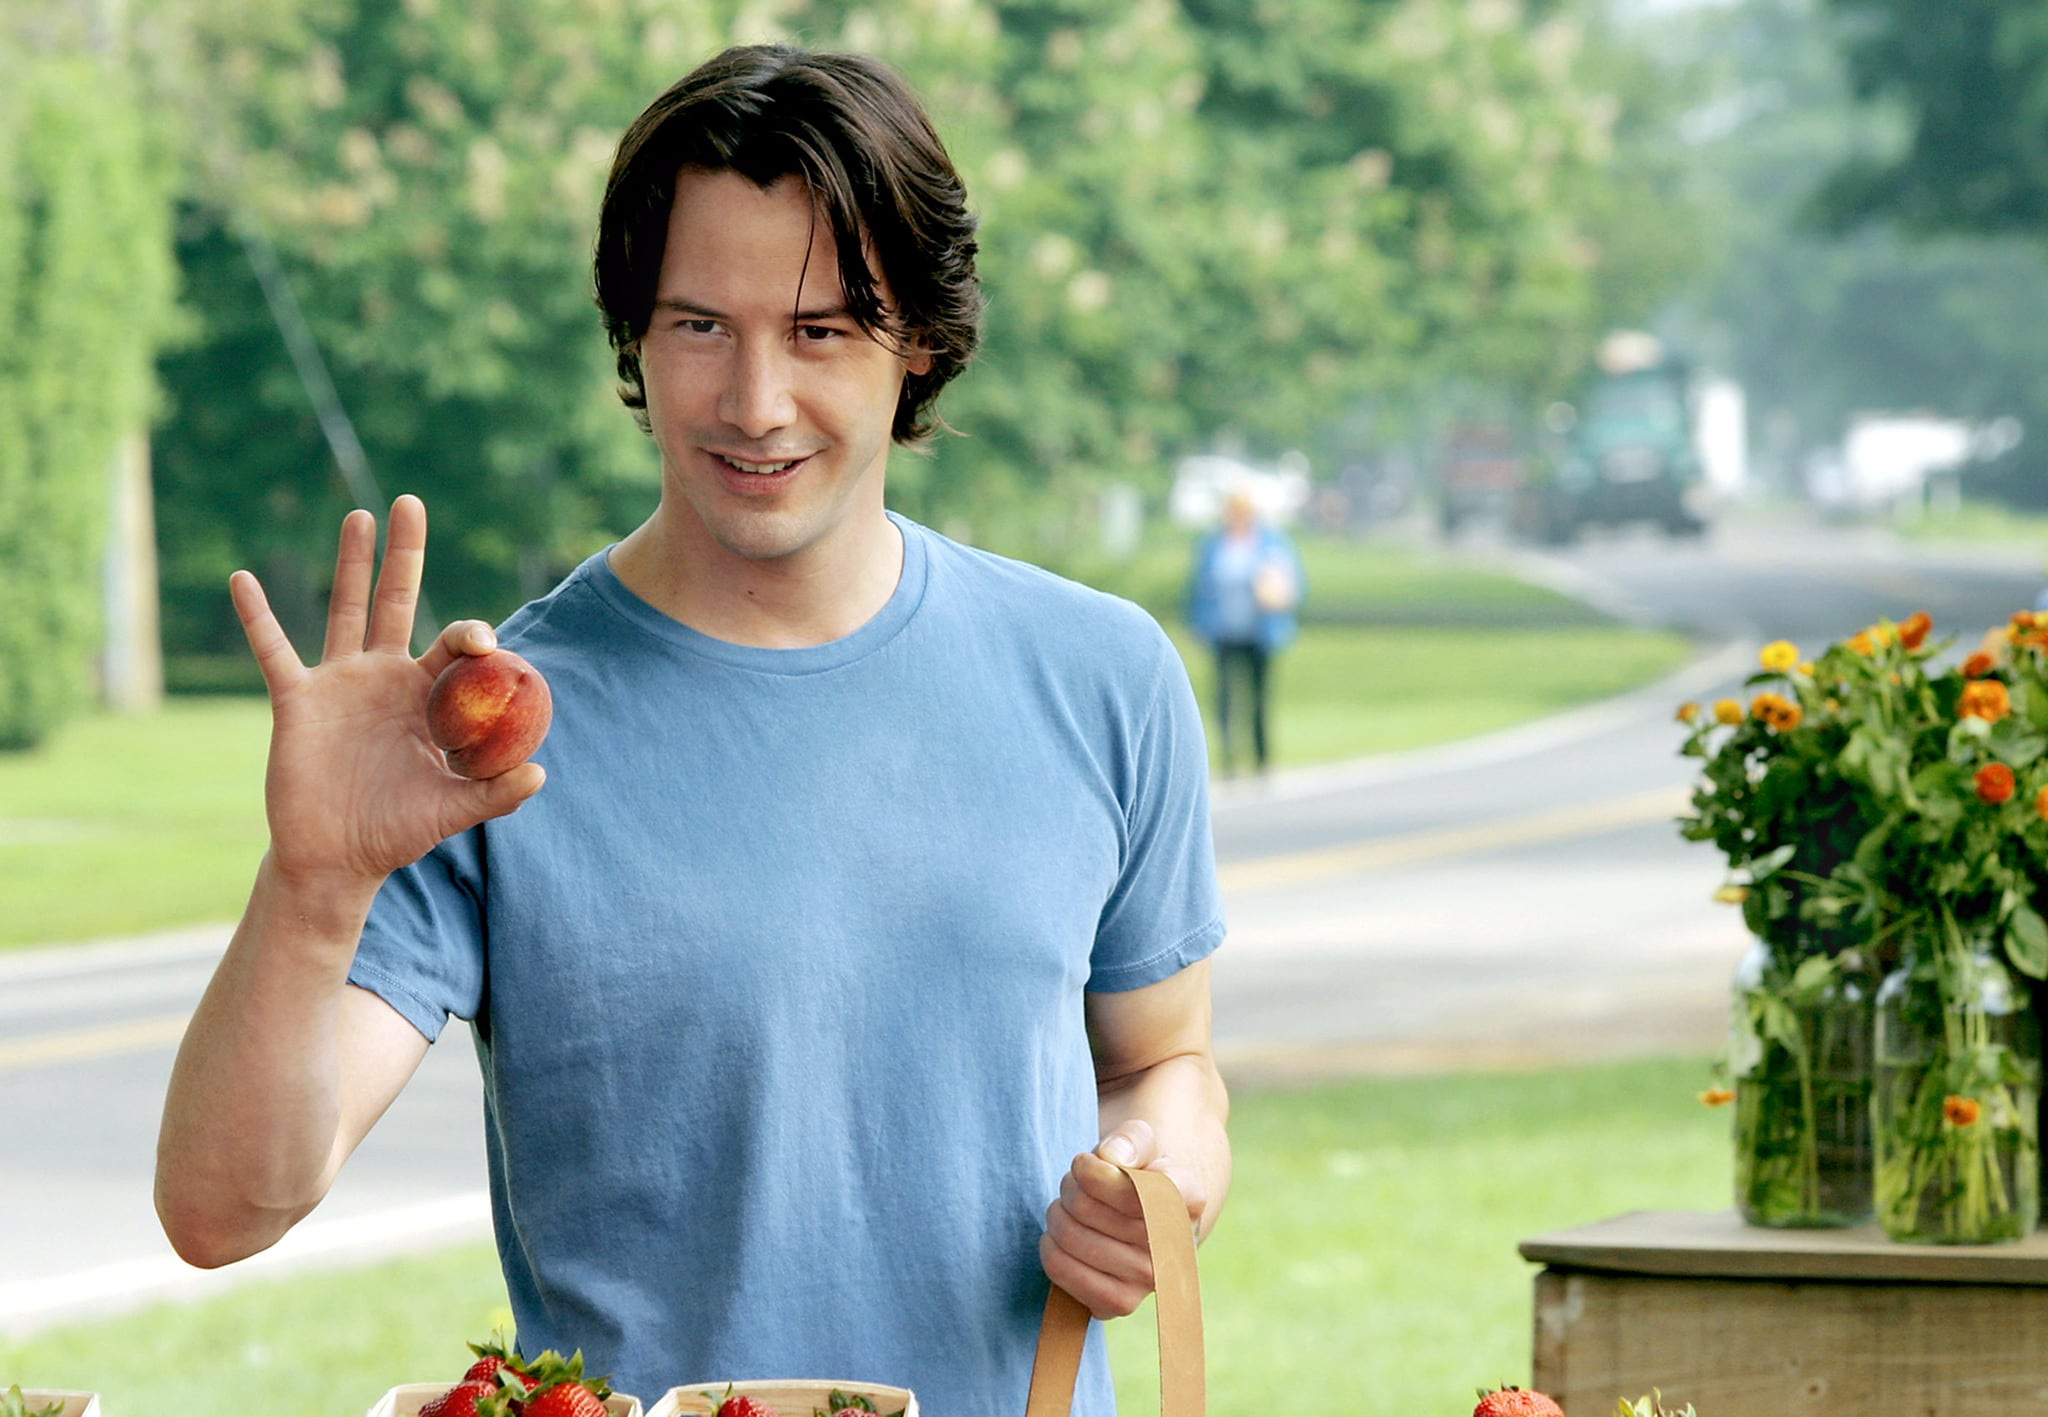 SOMETHING'S GOTTA GIVE, Keanu Reeves, 2003, (c) Columbia/courtesy Everett Collection